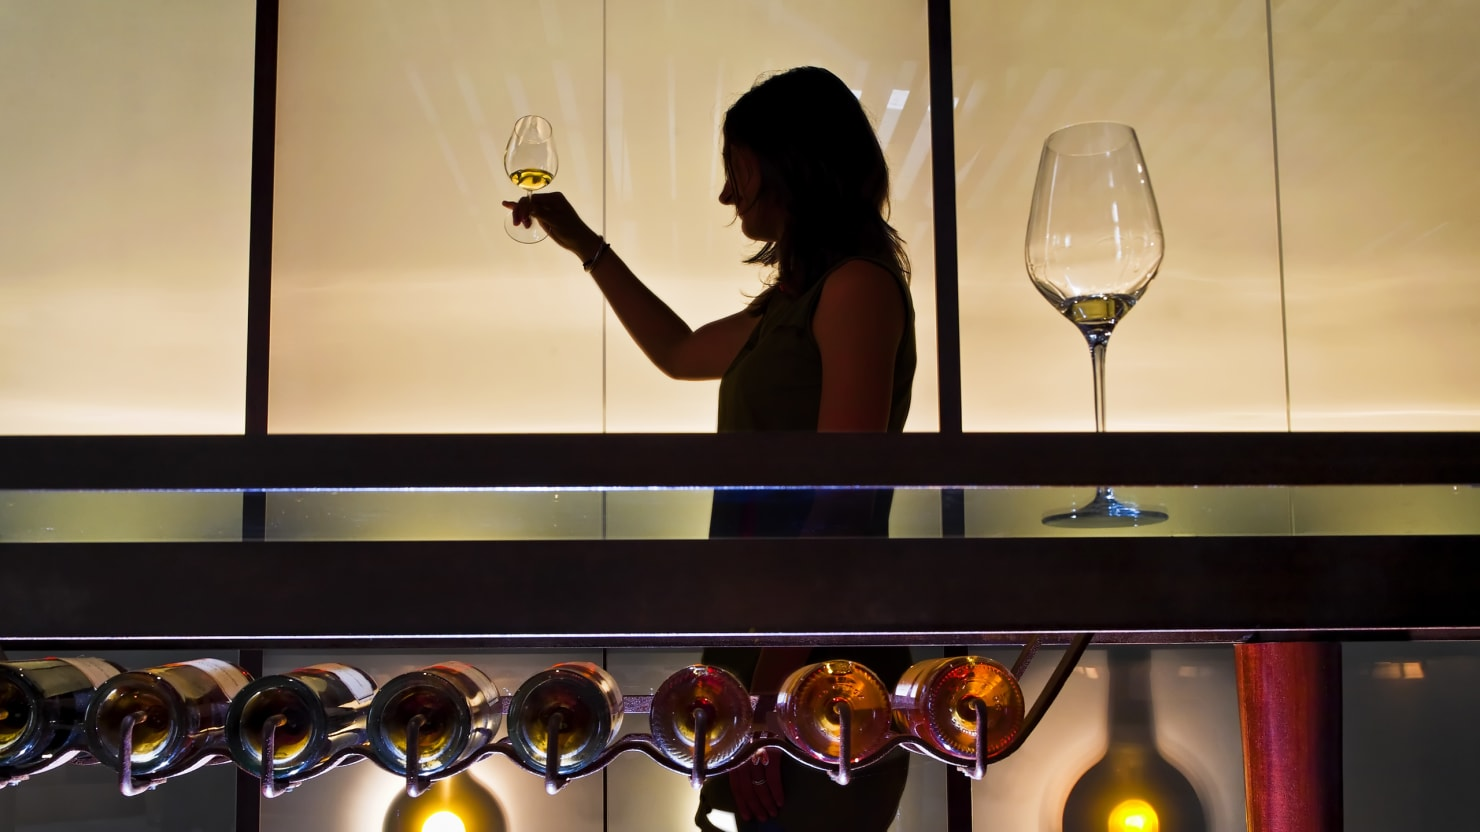 Yes, Women Can Make Great Wine